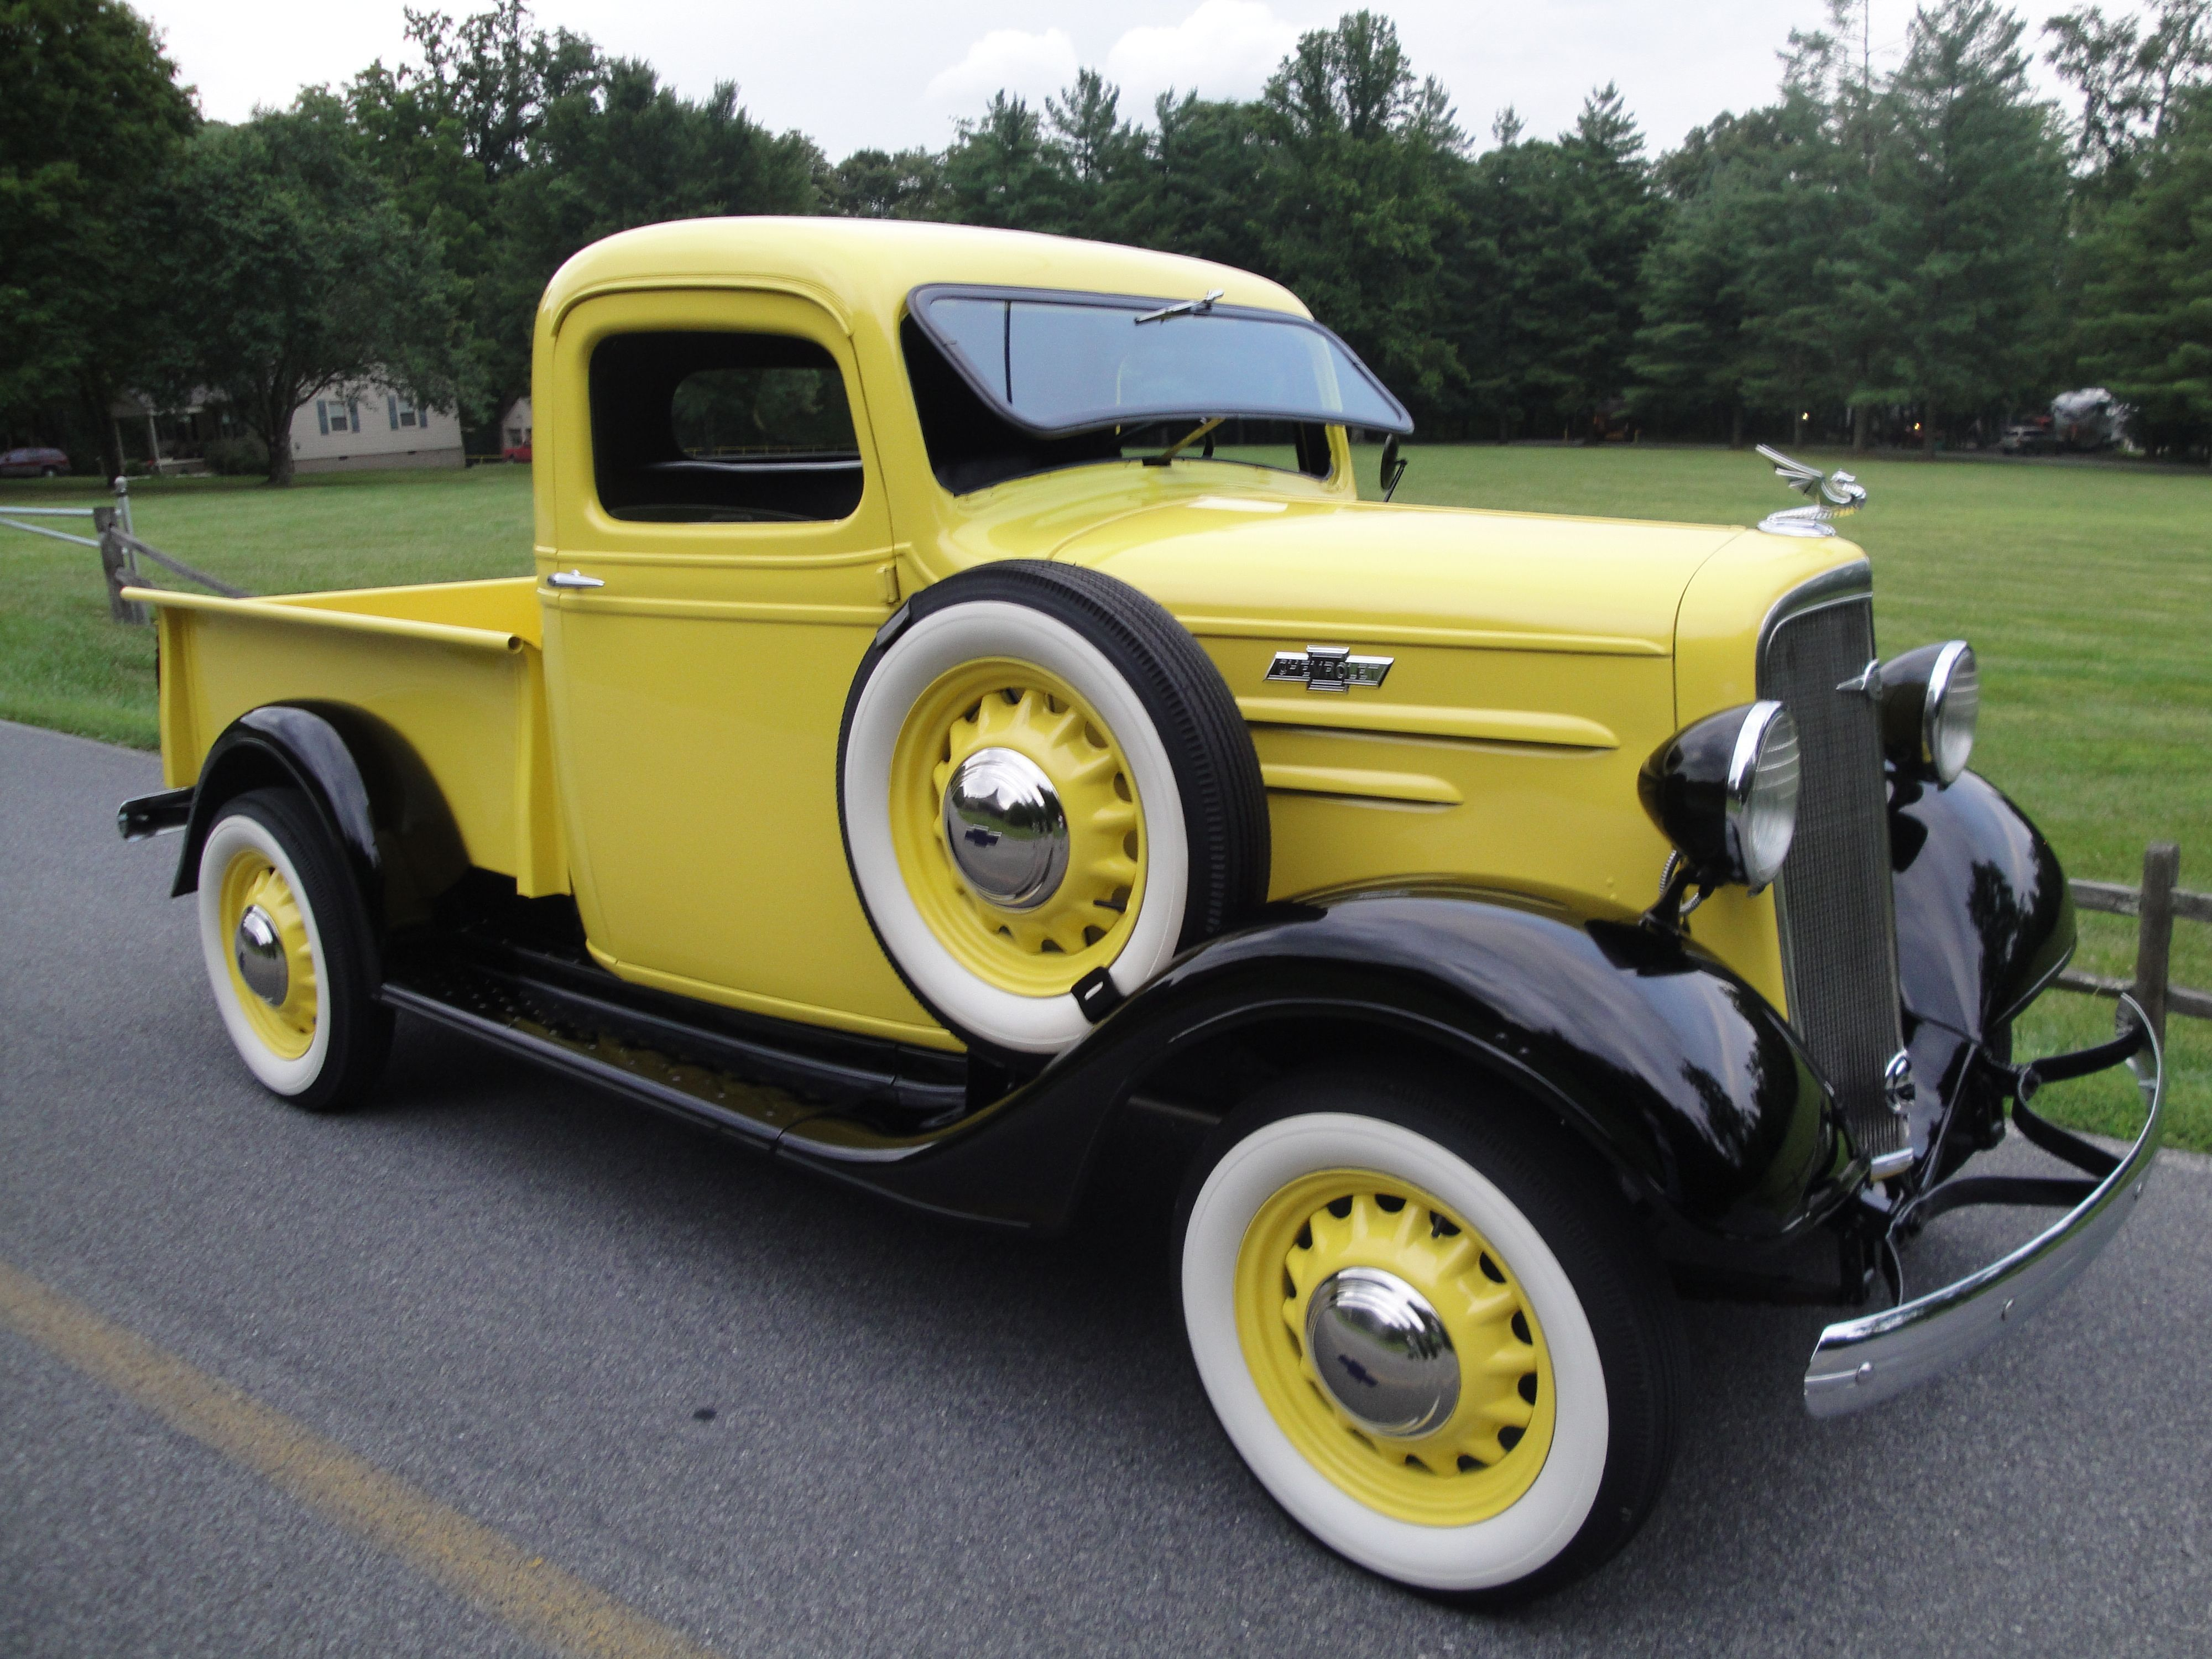 1936 Chevrolet 1 2 Ton Pickup Is It The Only 36 Chevy On The